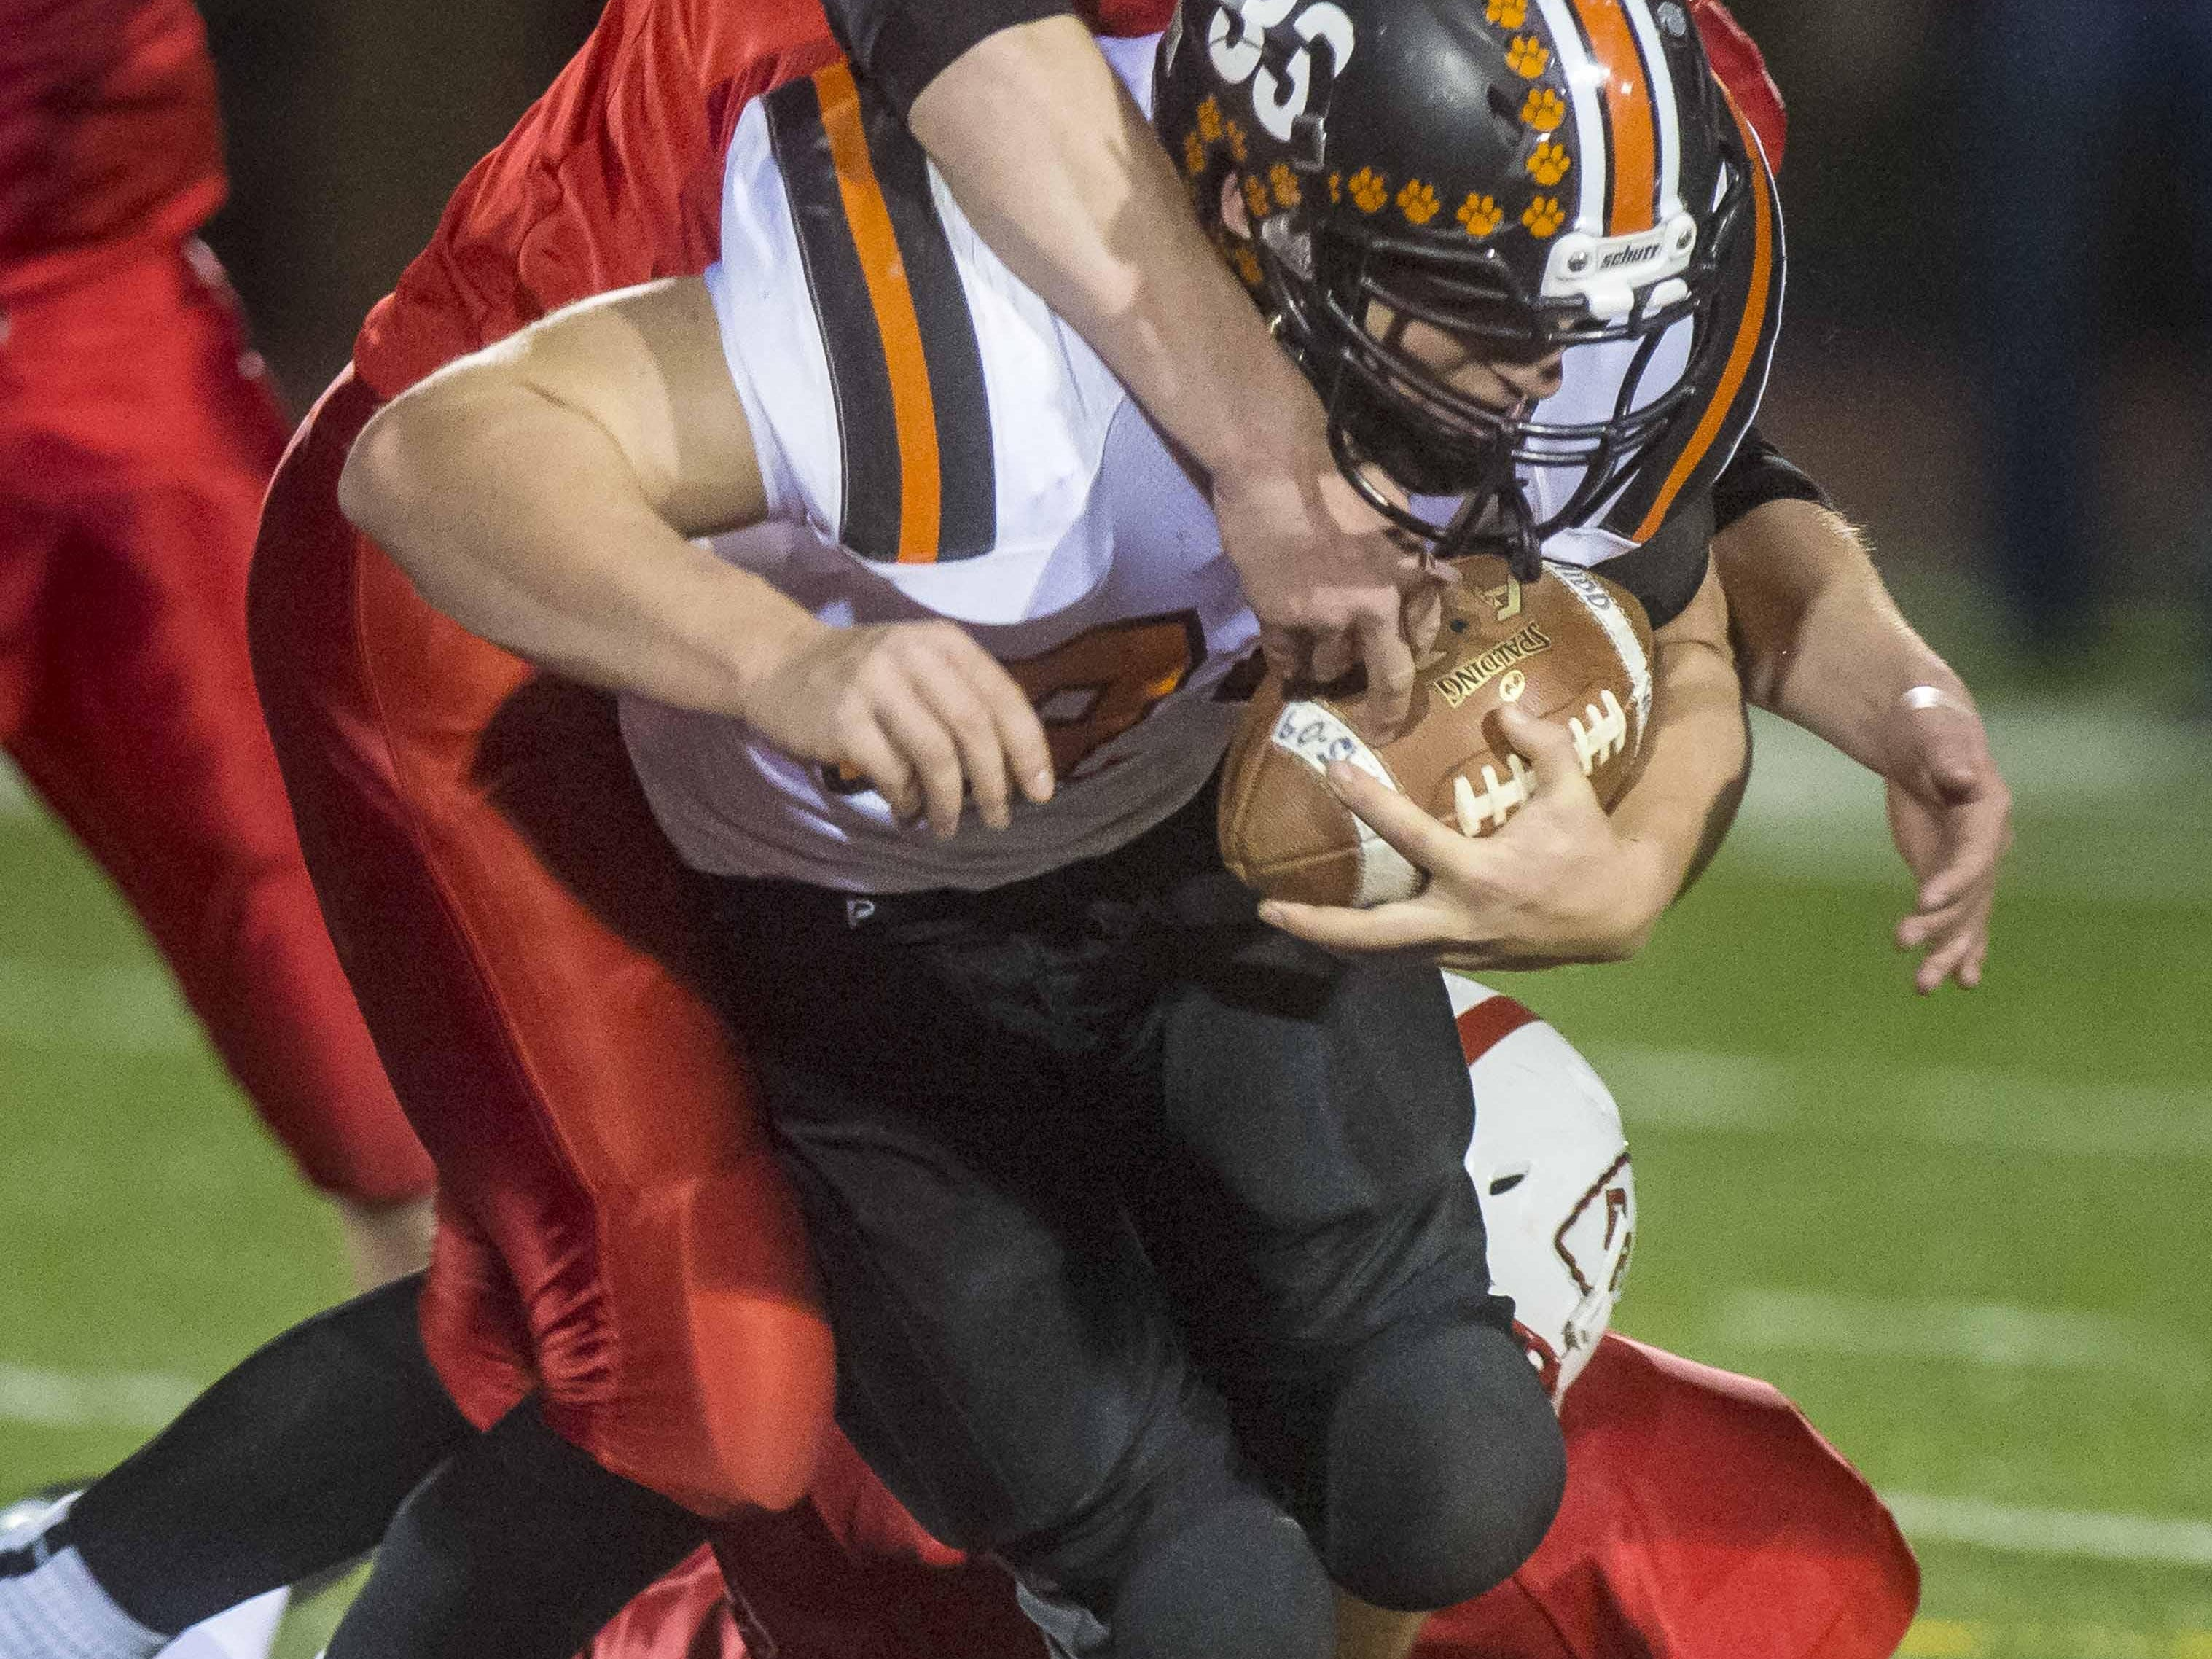 Middlebury's Cortland Fischer, center is tackled by Rutland's Jared Migliore, left, and Bailey Peters in the D1 state football championship in Rutland on Saturday, November 7, 2015.